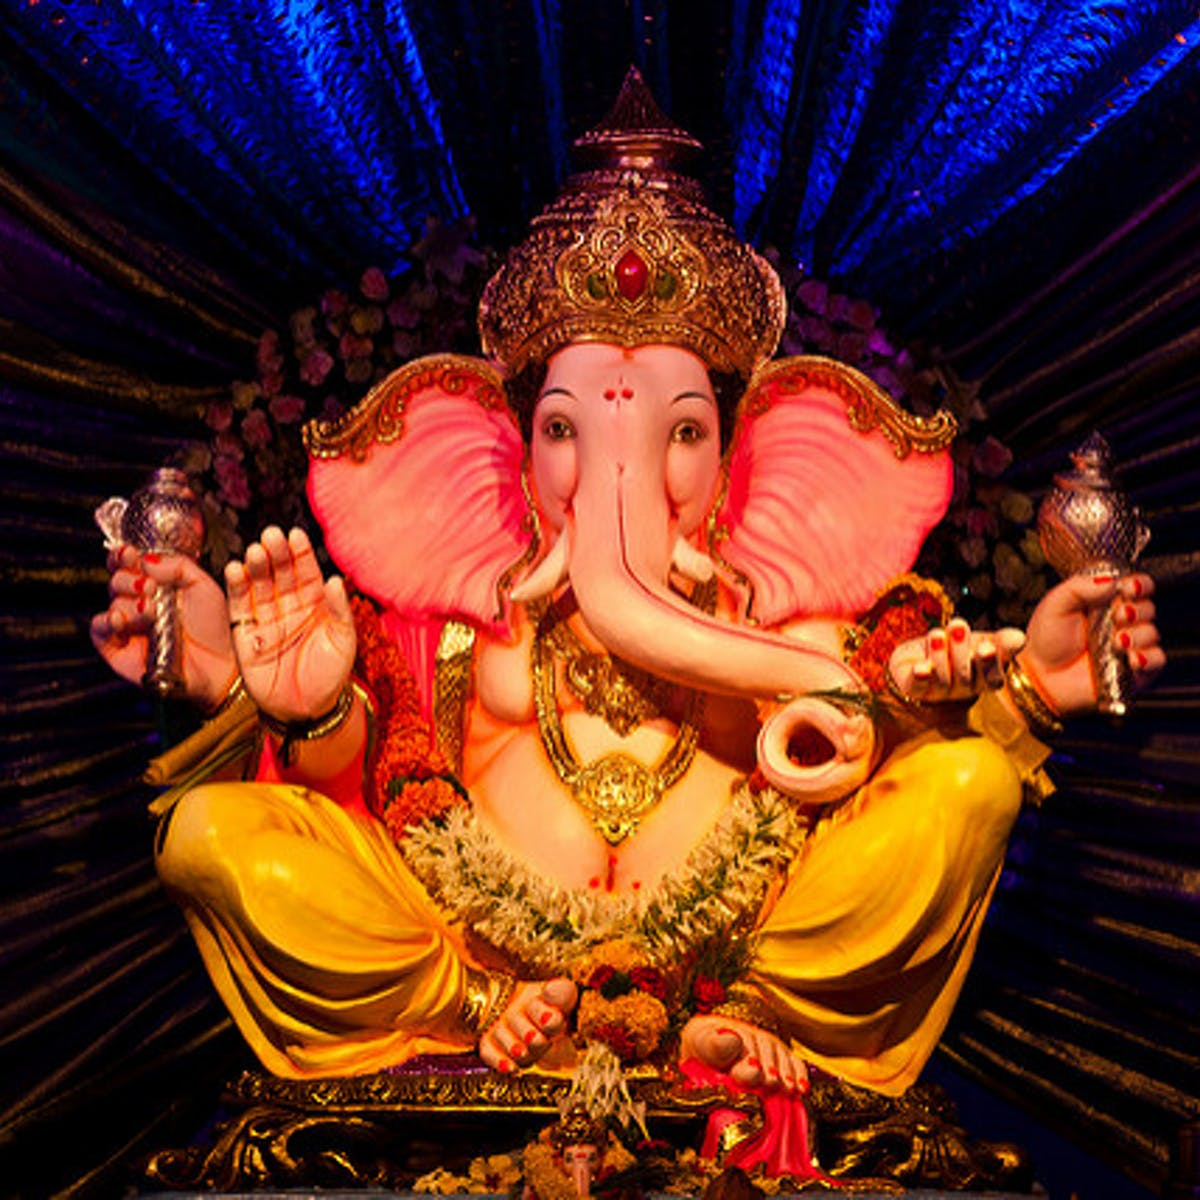 Why it's offensive to offer a lamb dinner to the Hindu god Ganesha